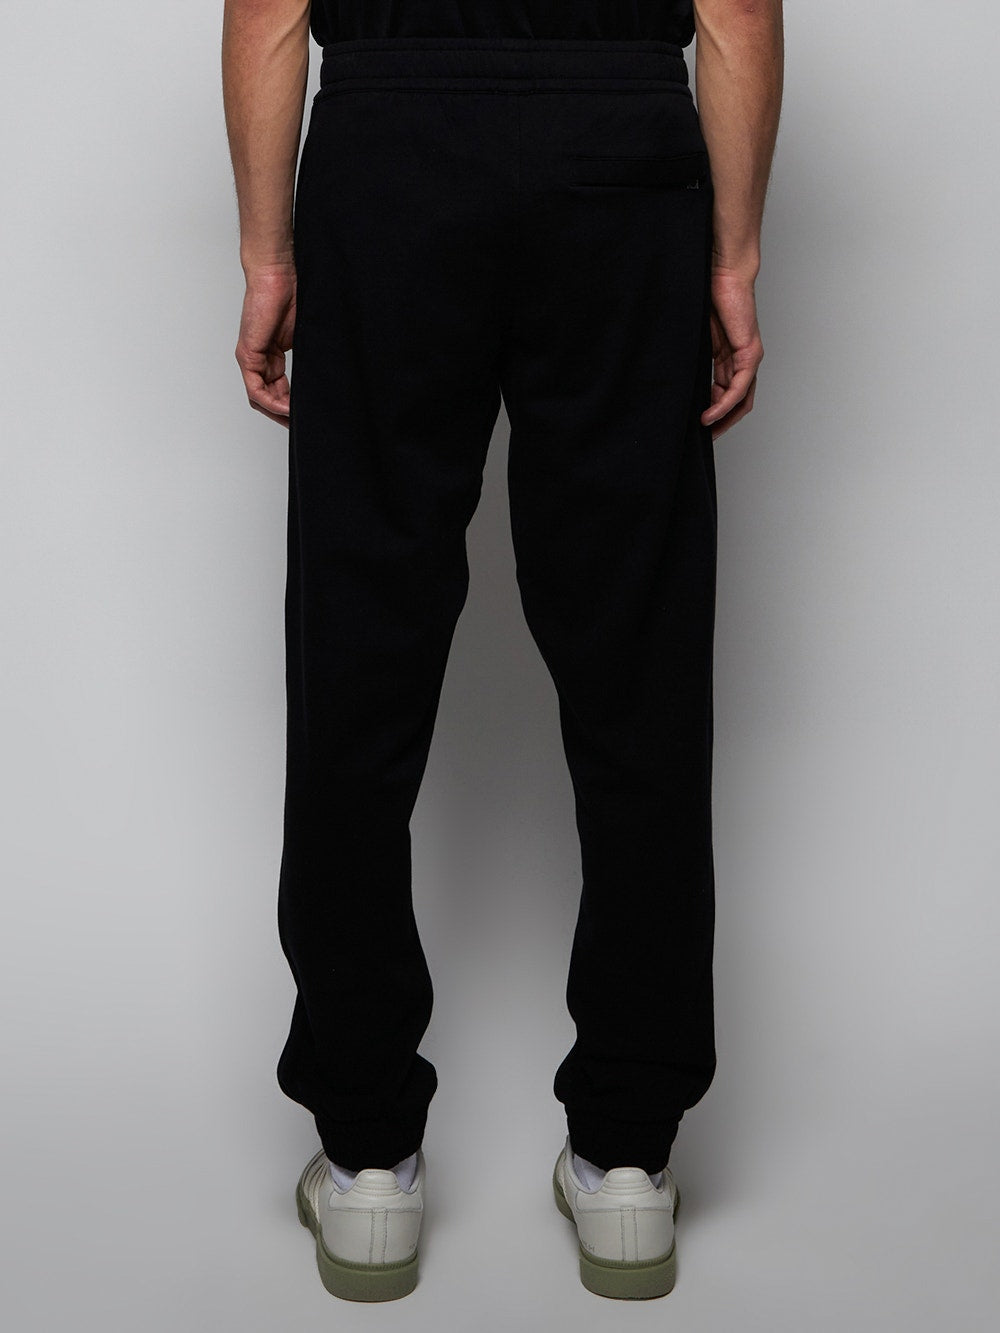 Black Shark Patch Sweatpants